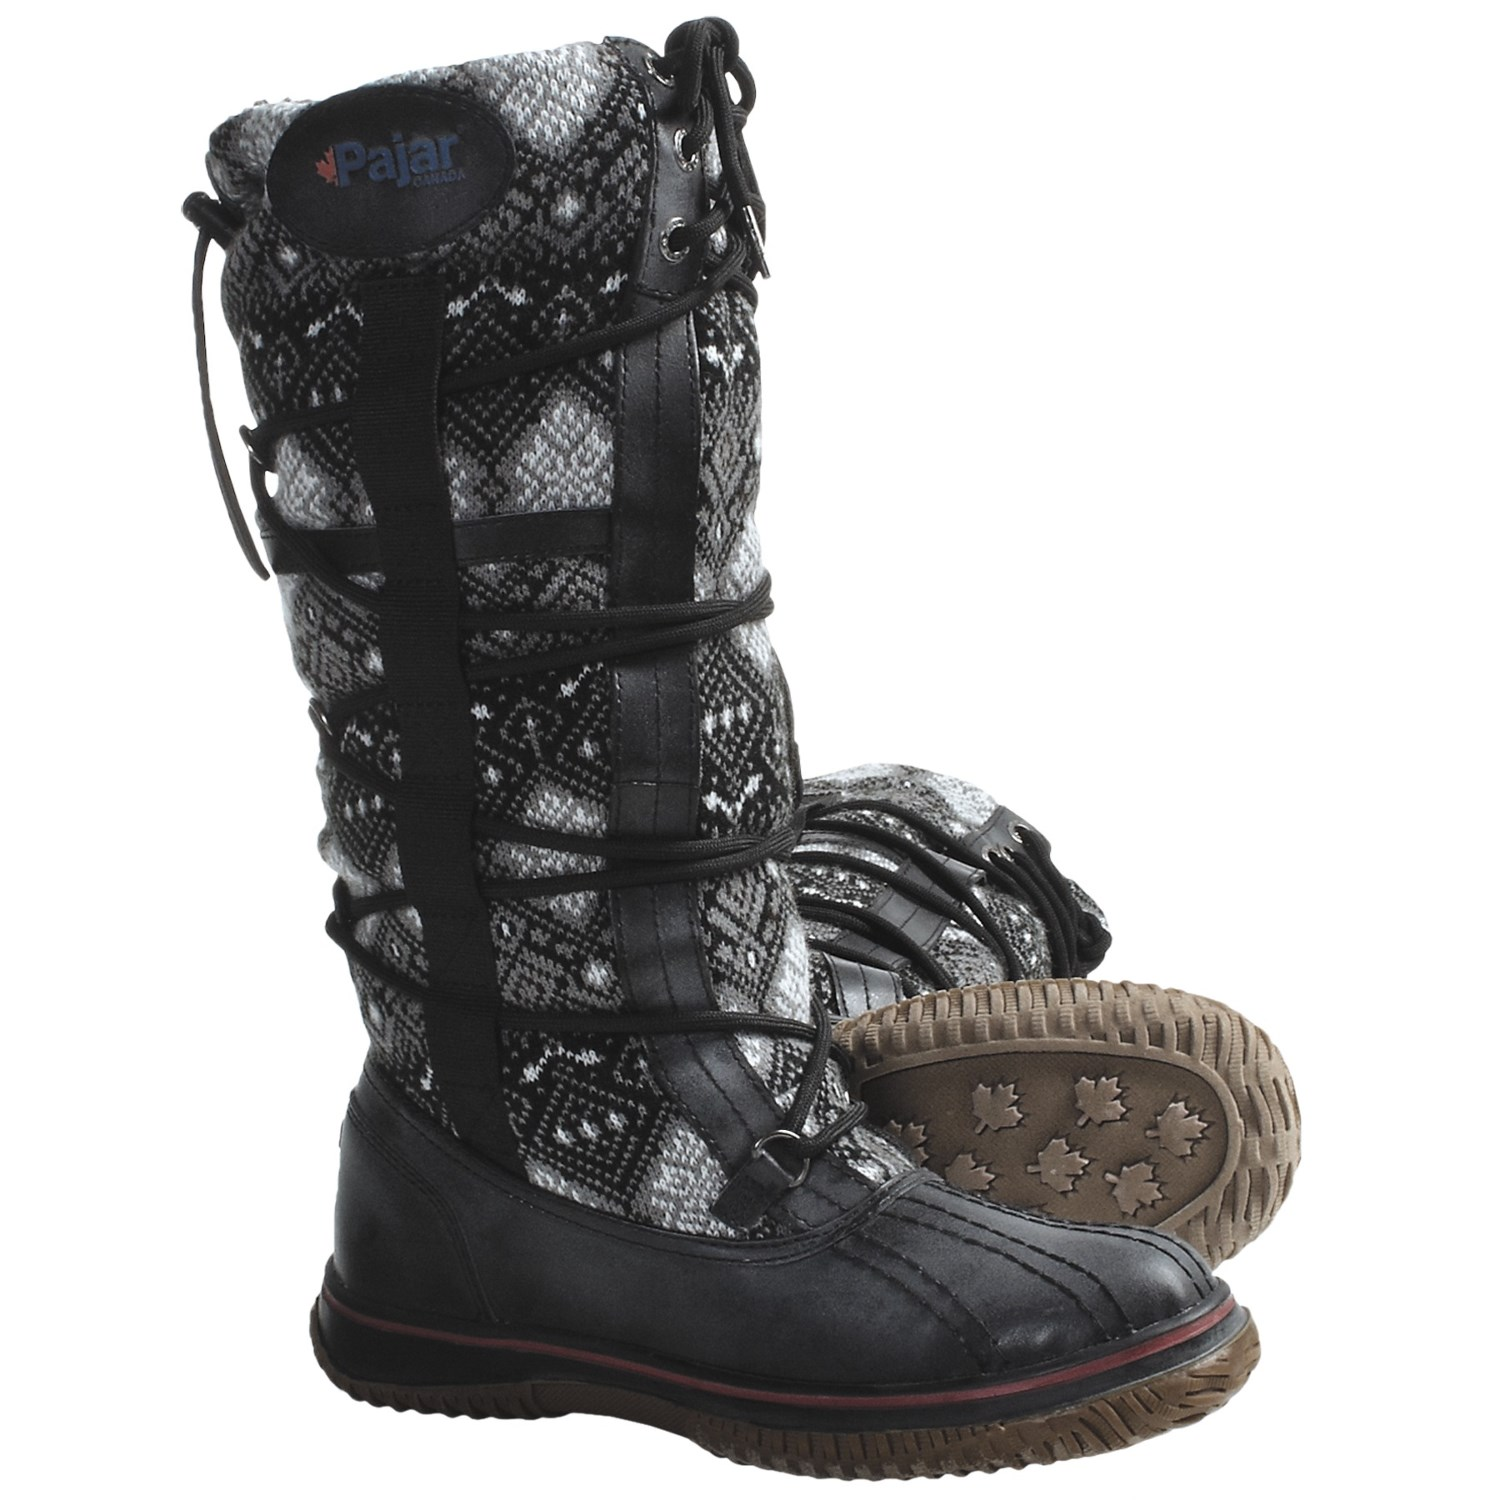 Pajar Crosby 3 Boots For Women 4706x Save 90